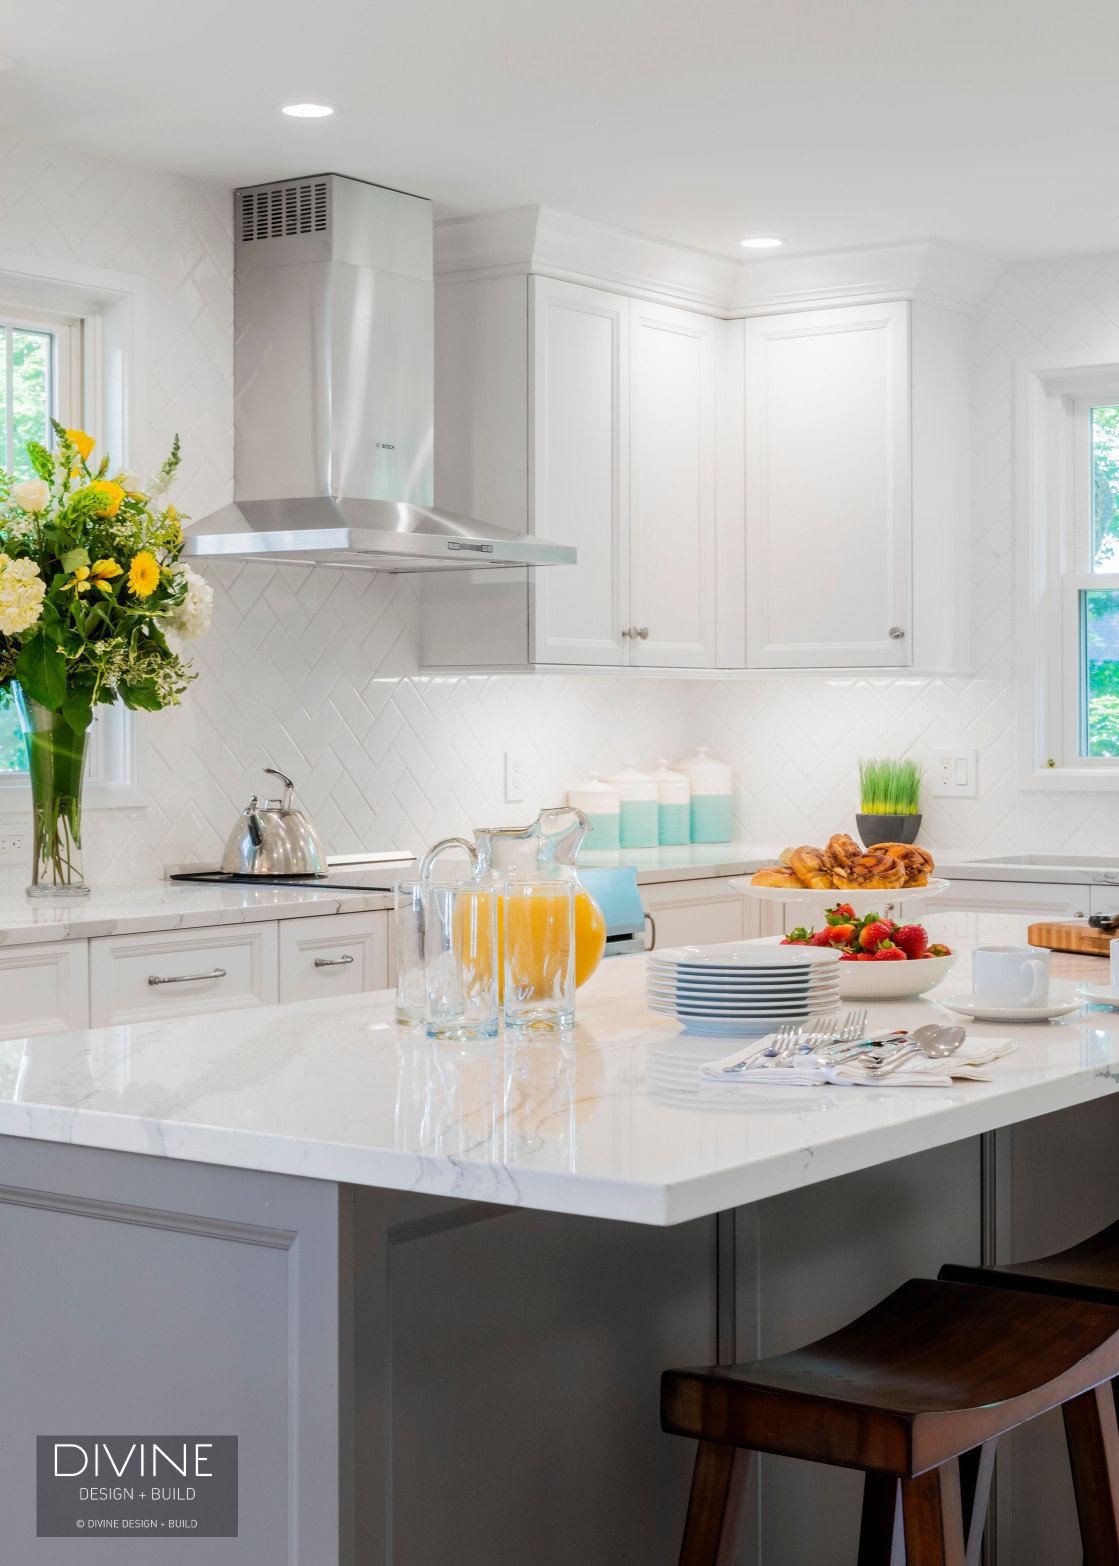 Transitional style kitchen with white and grey shaker cabinets. White subway tile backsplash in herringbone pattern. Calacatta countertops.